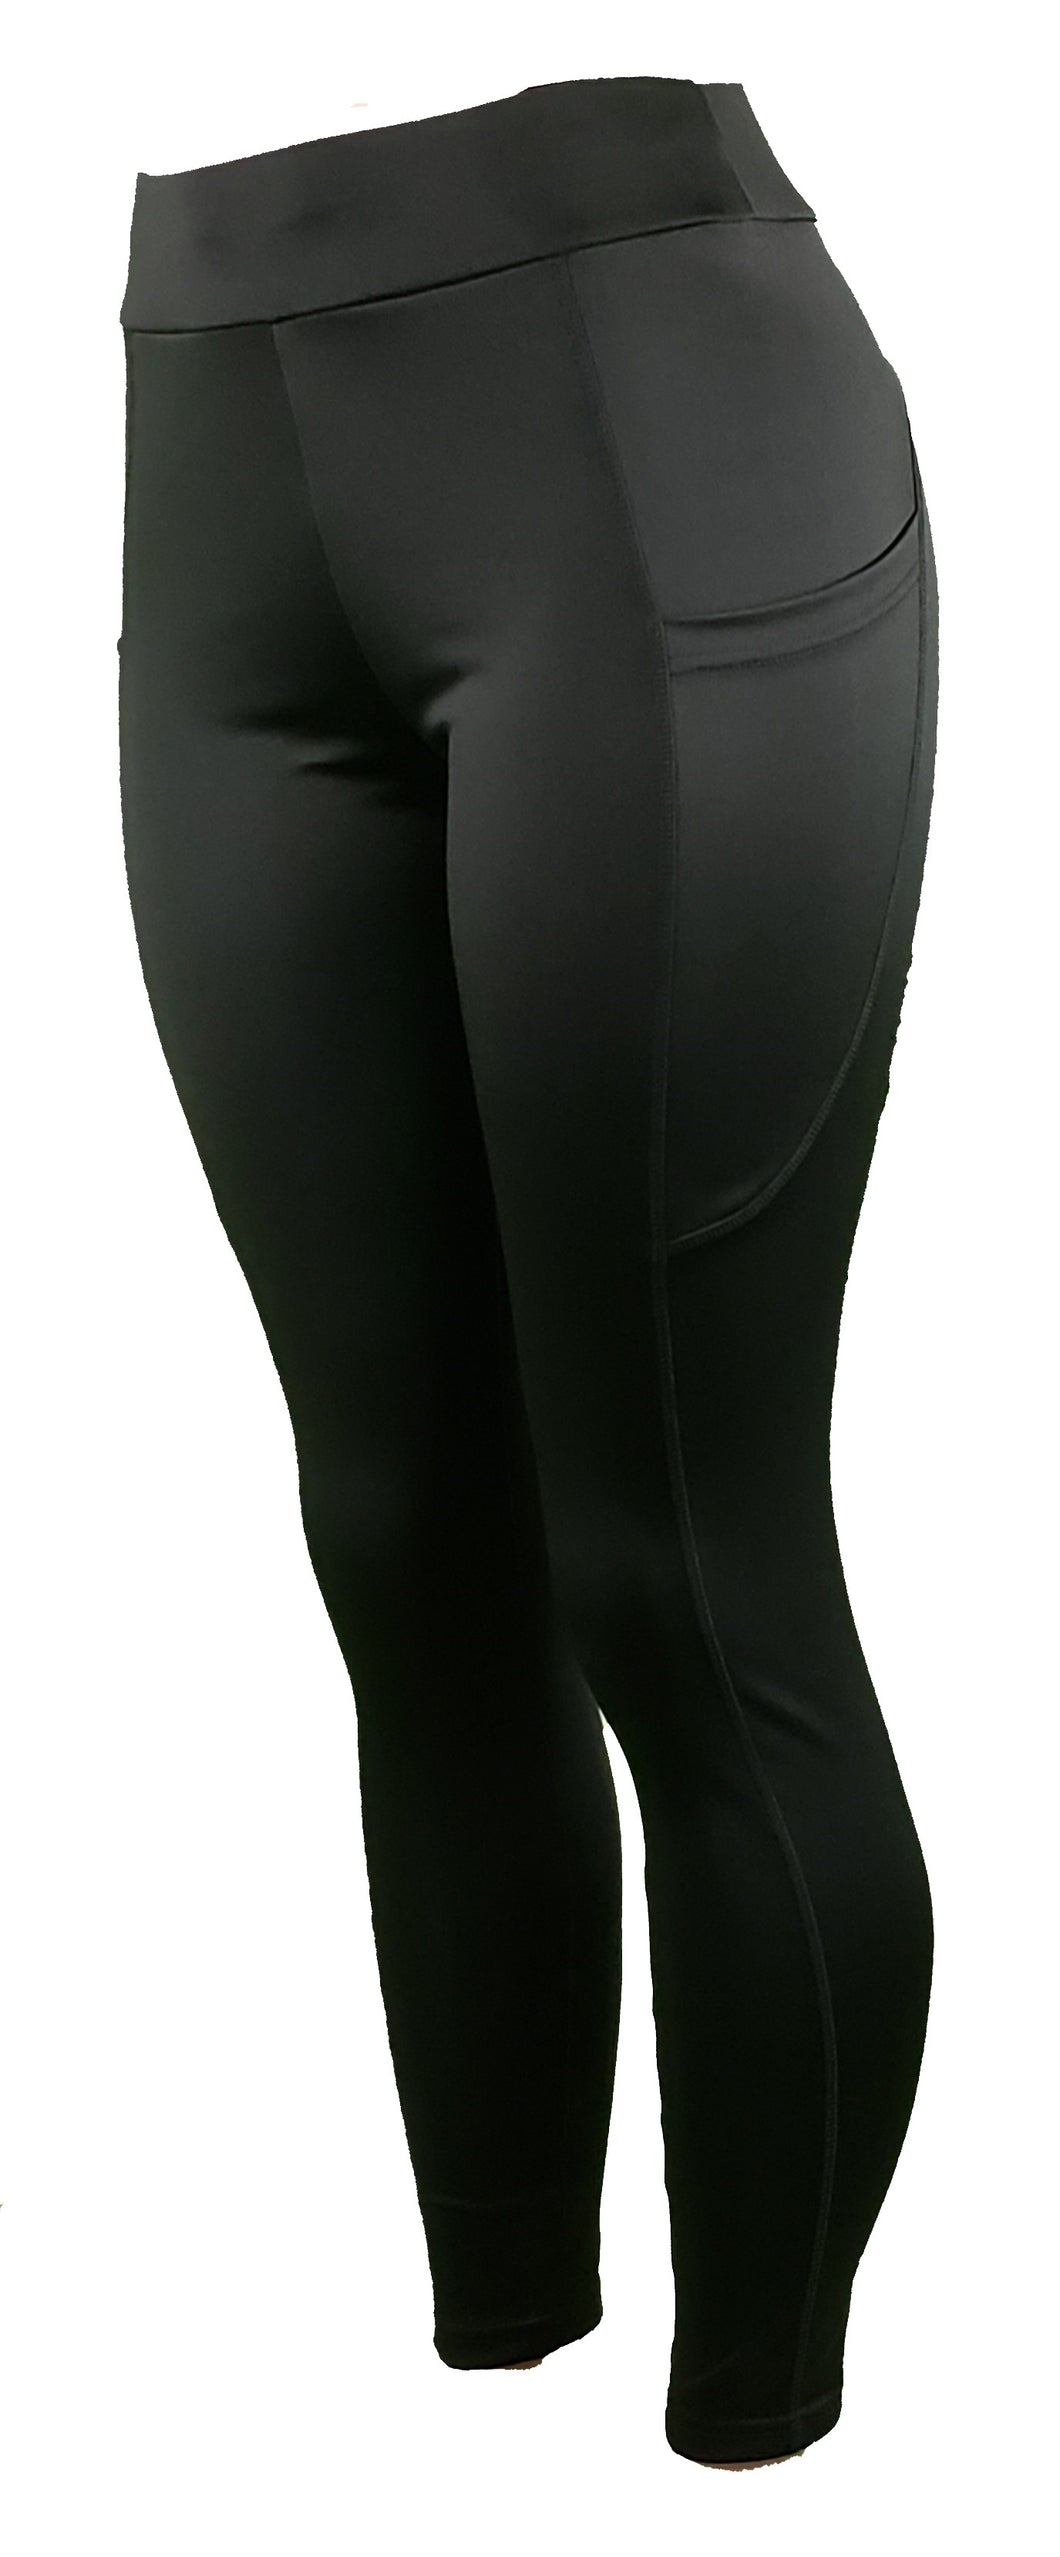 Black leggings with pockets - GS4LESS